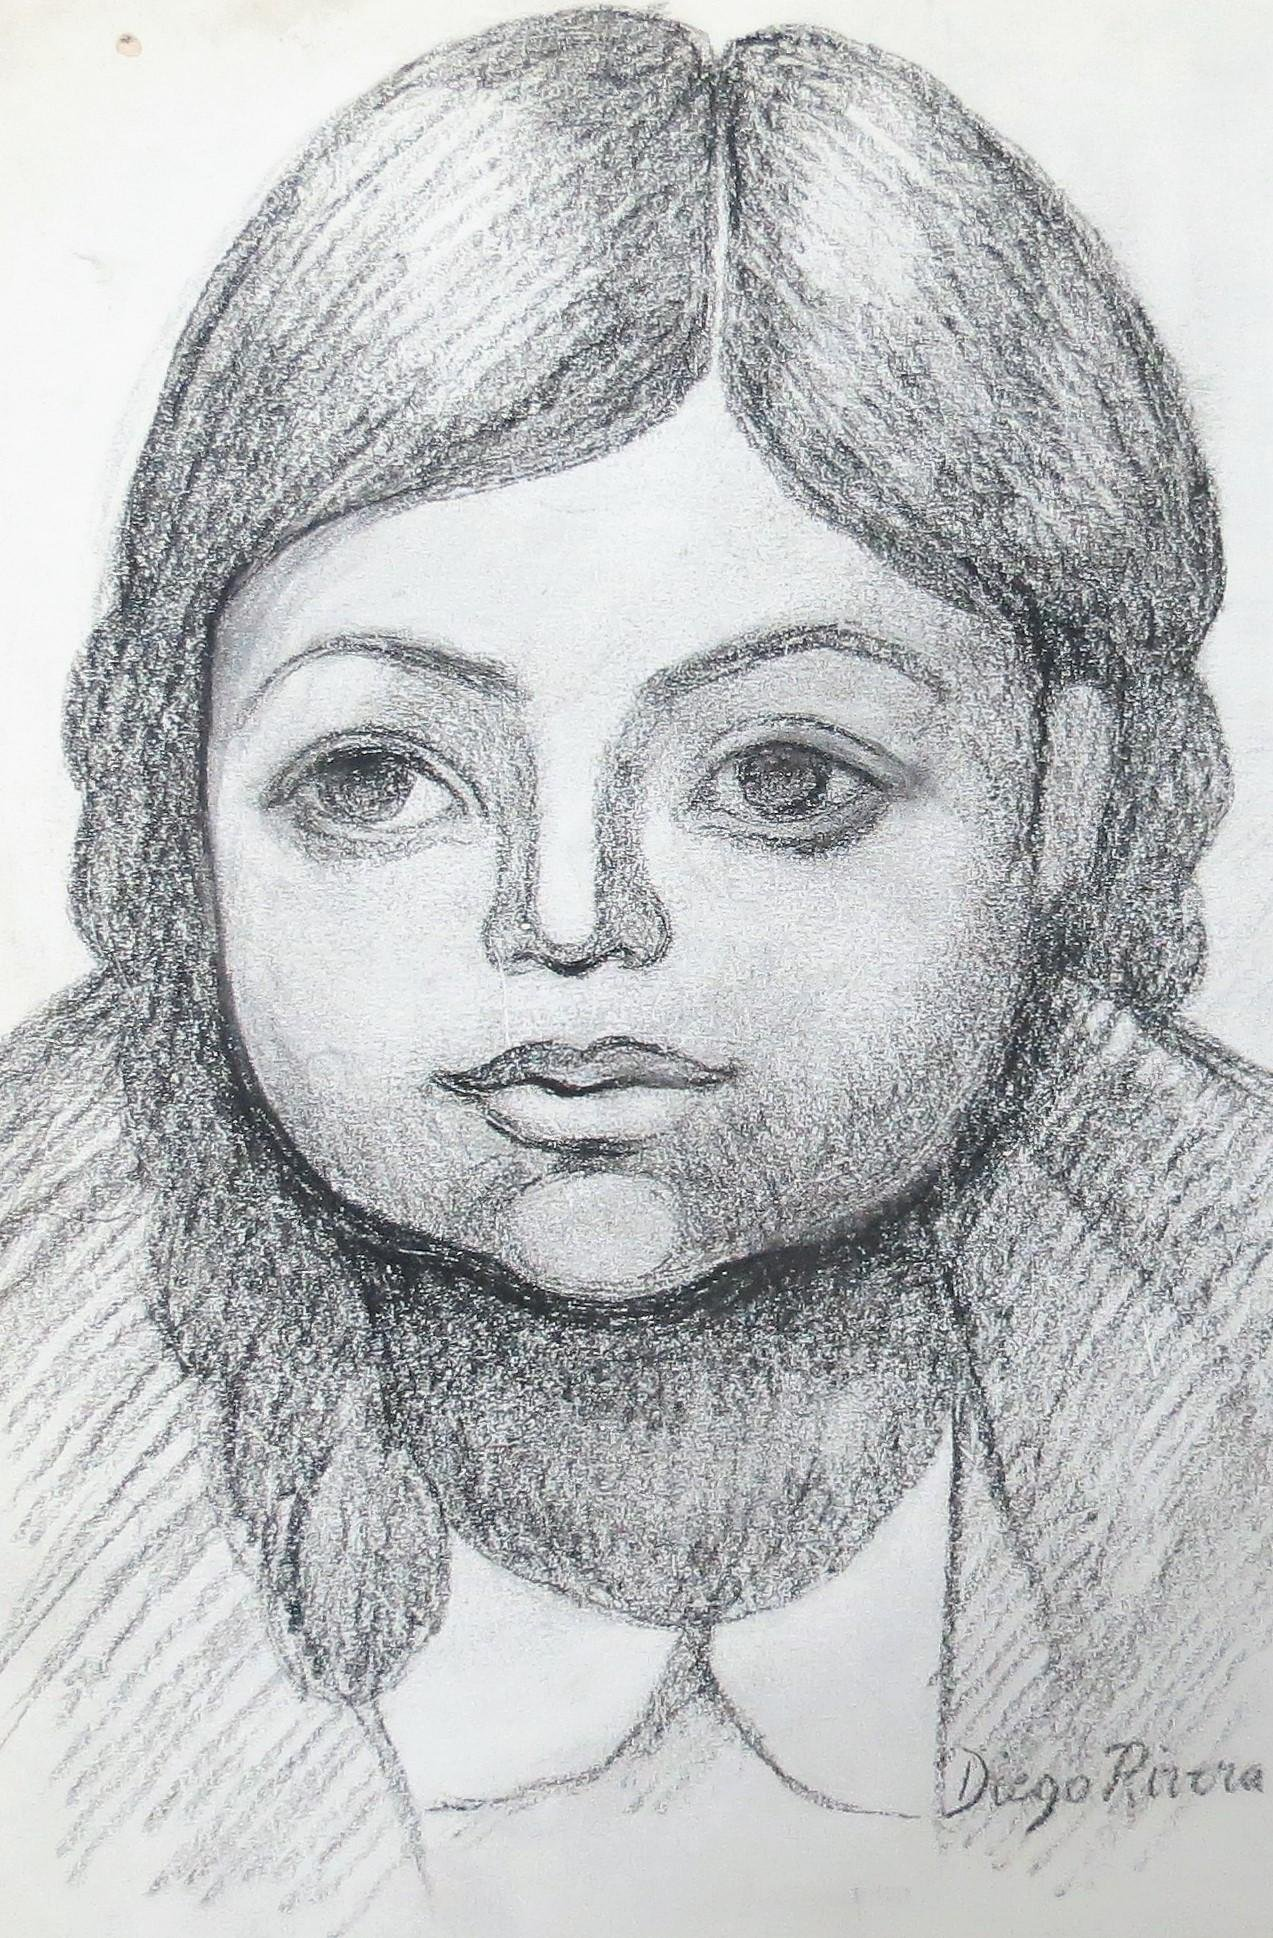 Diego Rivera - Pencil on Paper (Attributed) Excellent